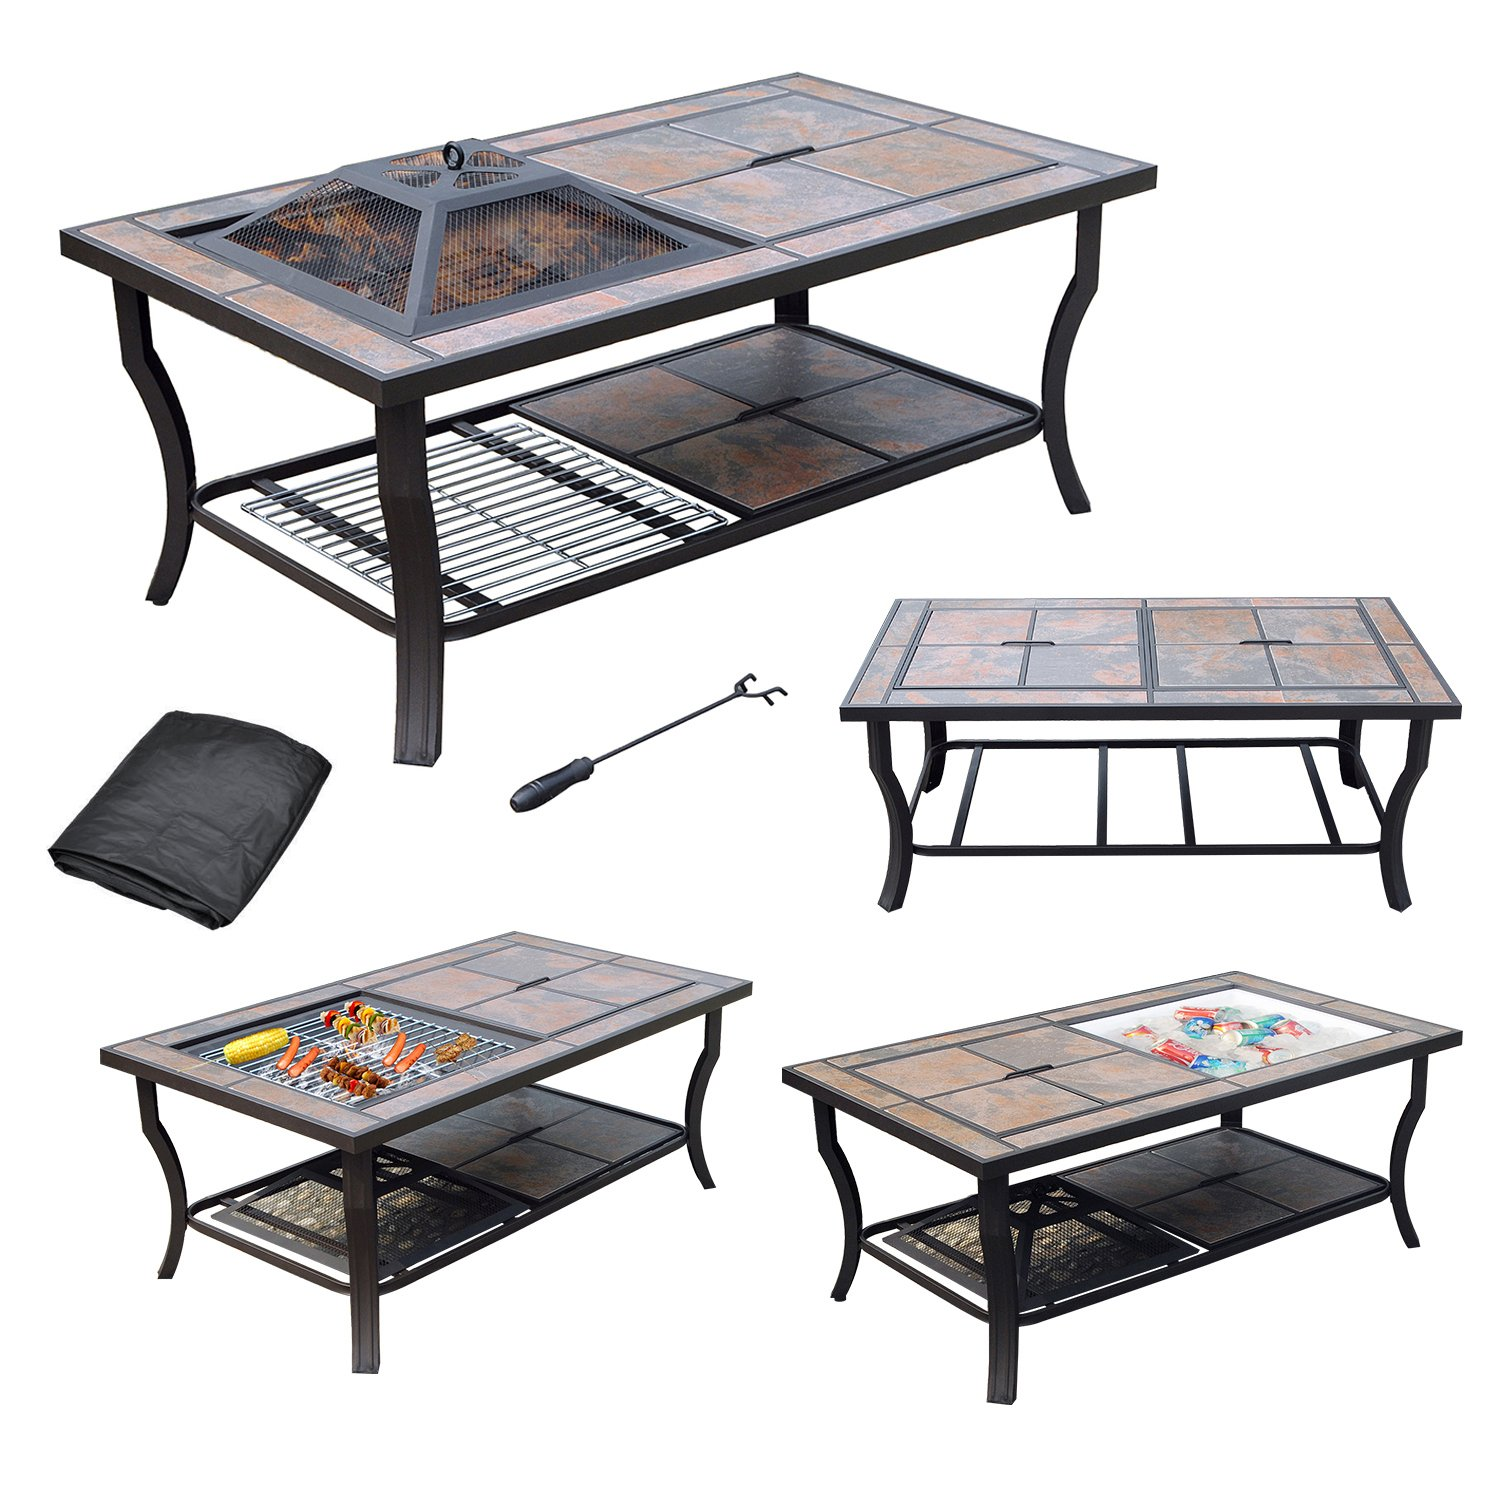 AXXONN 4 in 1 Rectangular Tile Top Fire Pit Cooler Grill and Coffee Table with Cover